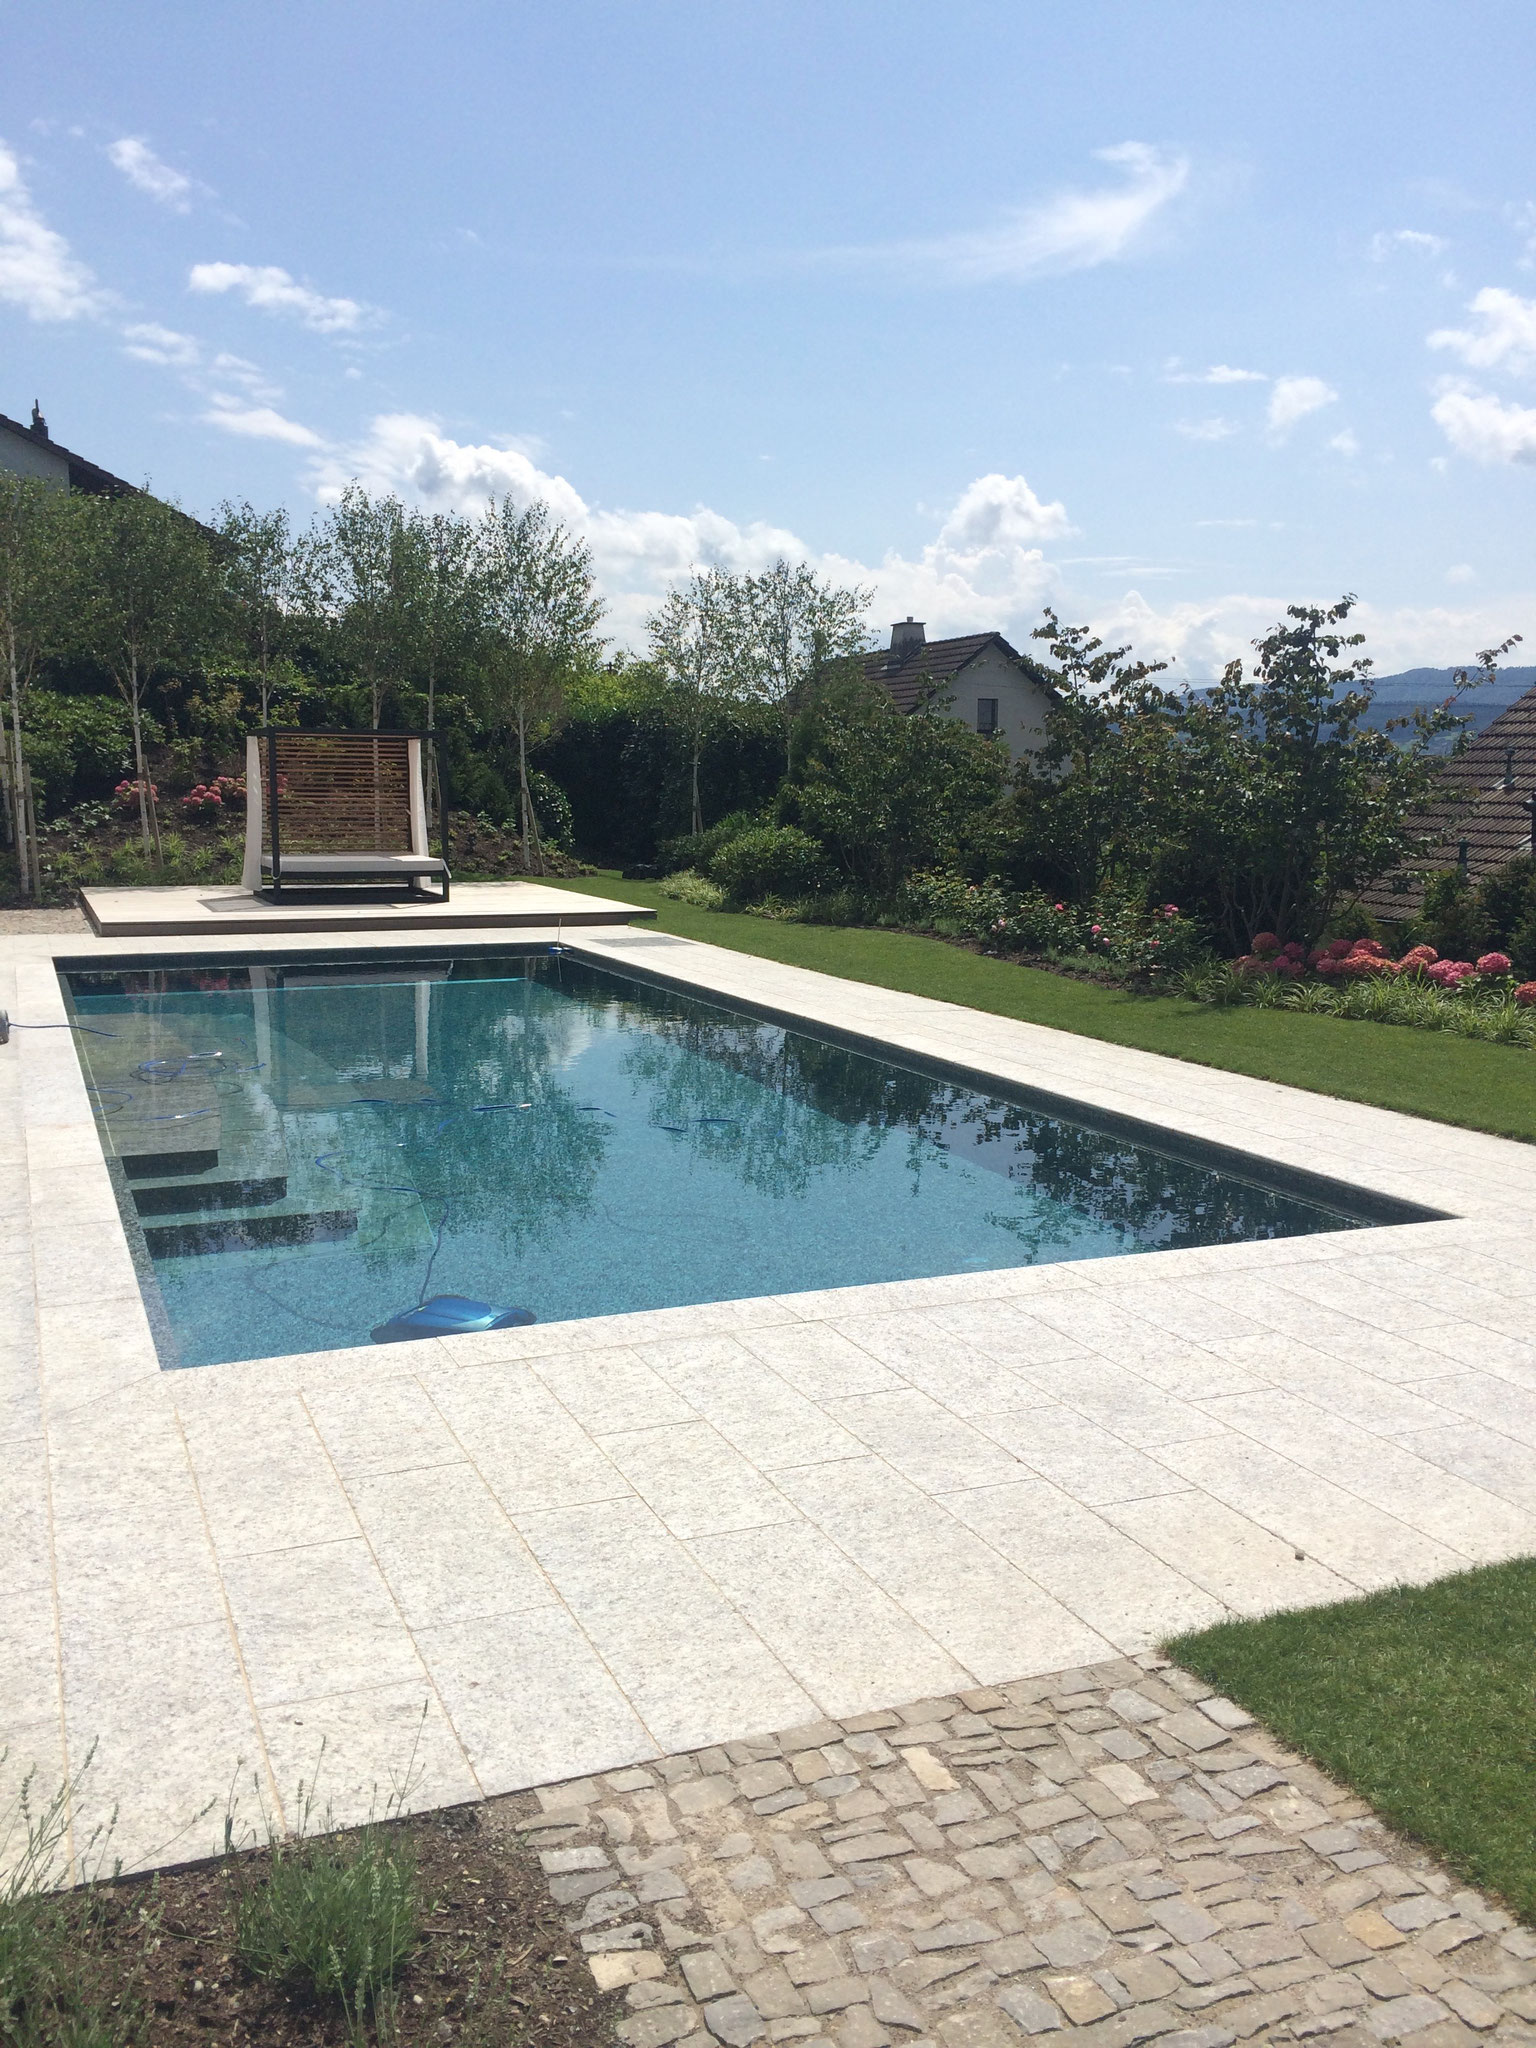 Pool Villa in Erlenbach